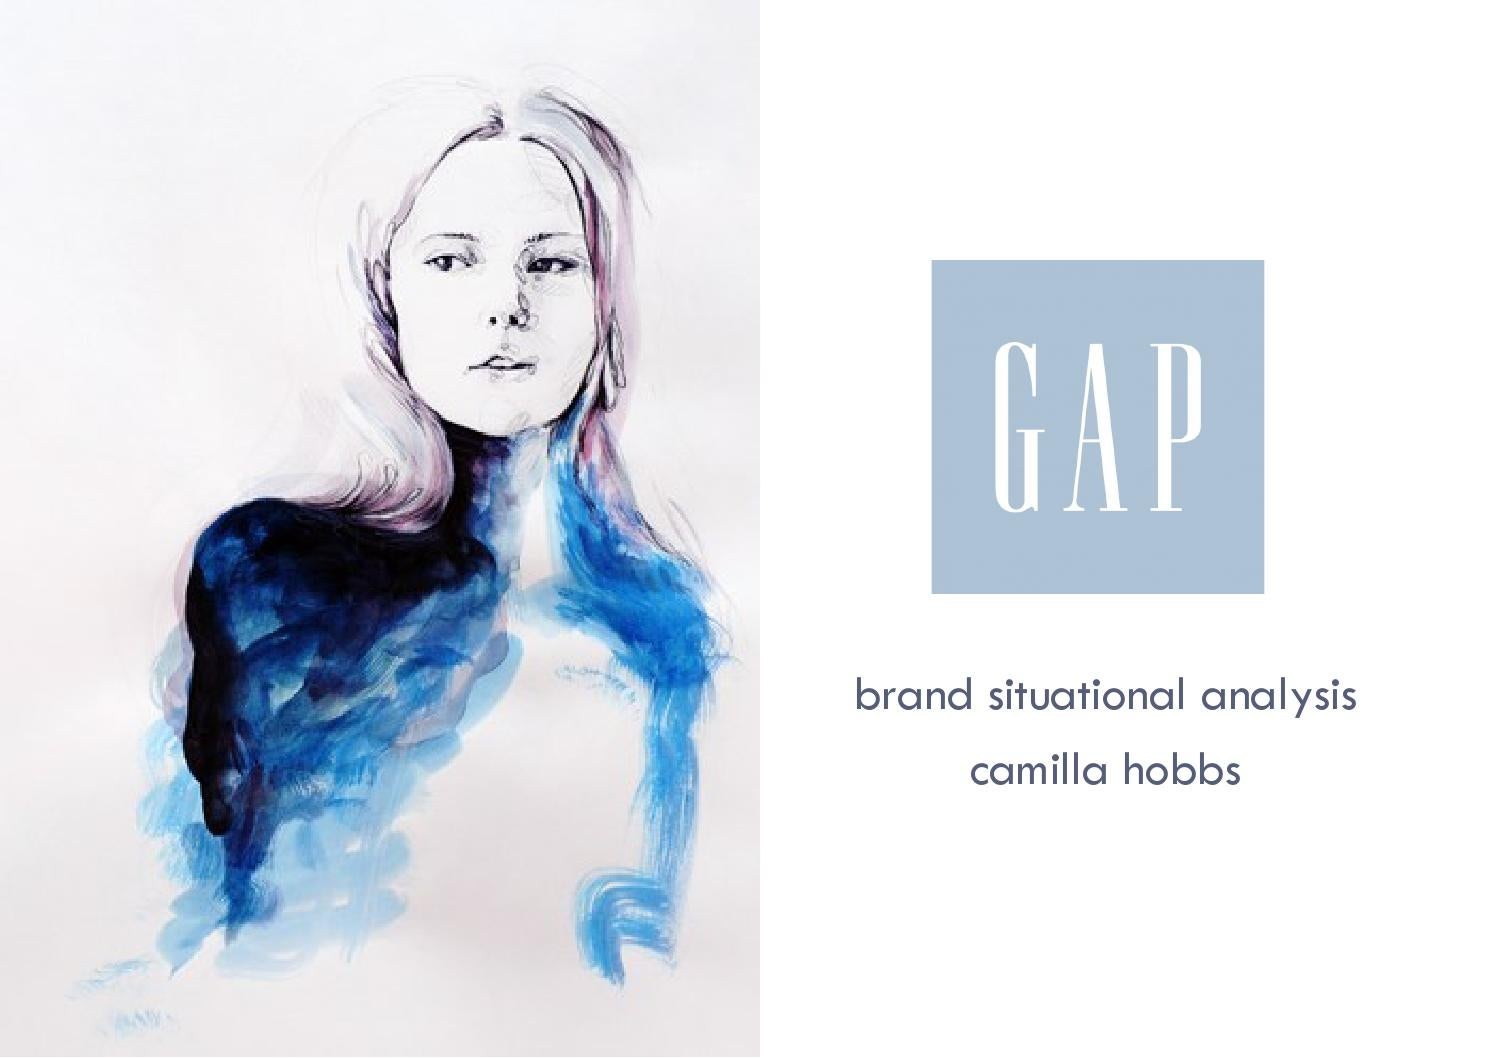 case study and business analysis of valentino and simone rocha in gap brand situational analysis